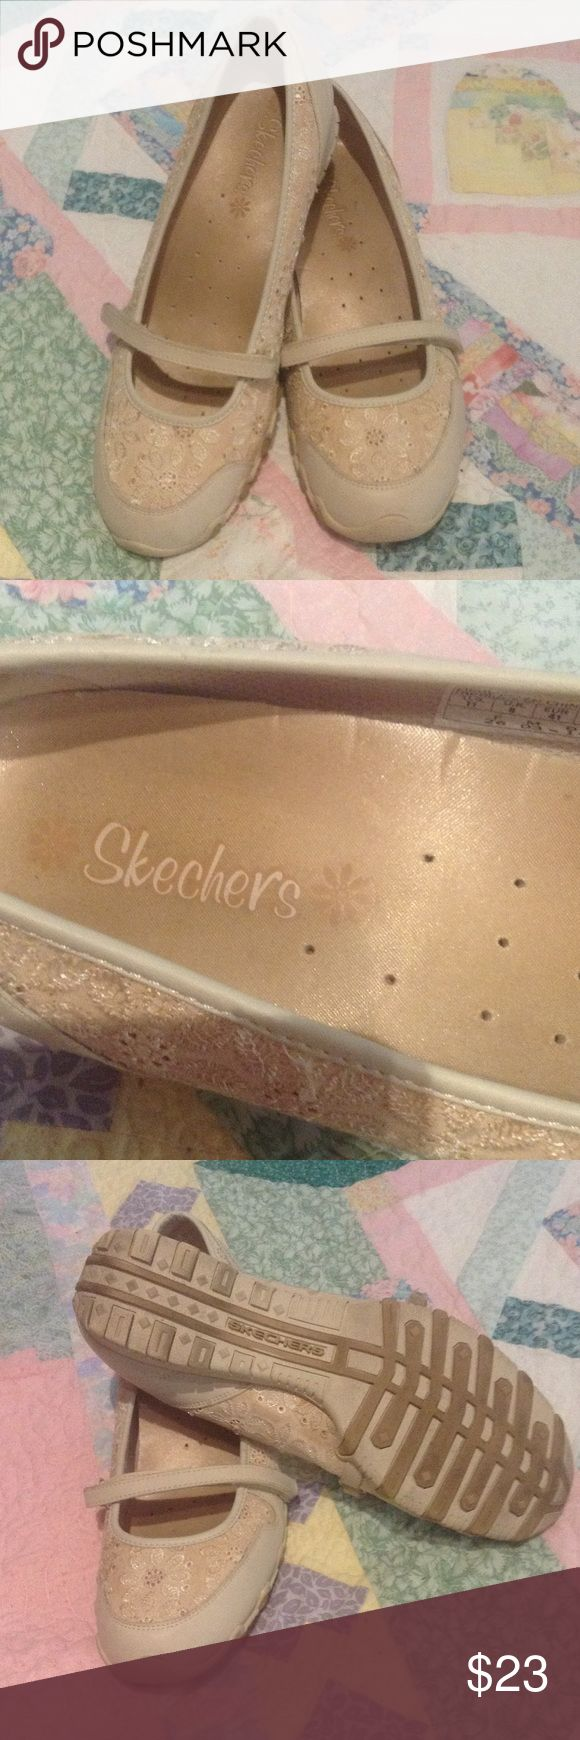 Skechers, Mary Janes, Size 11 Leather/Embroidered textile.  Shoes are a rePosh that did not fit.  They show very little wear. Skechers Shoes Flats & Loafers